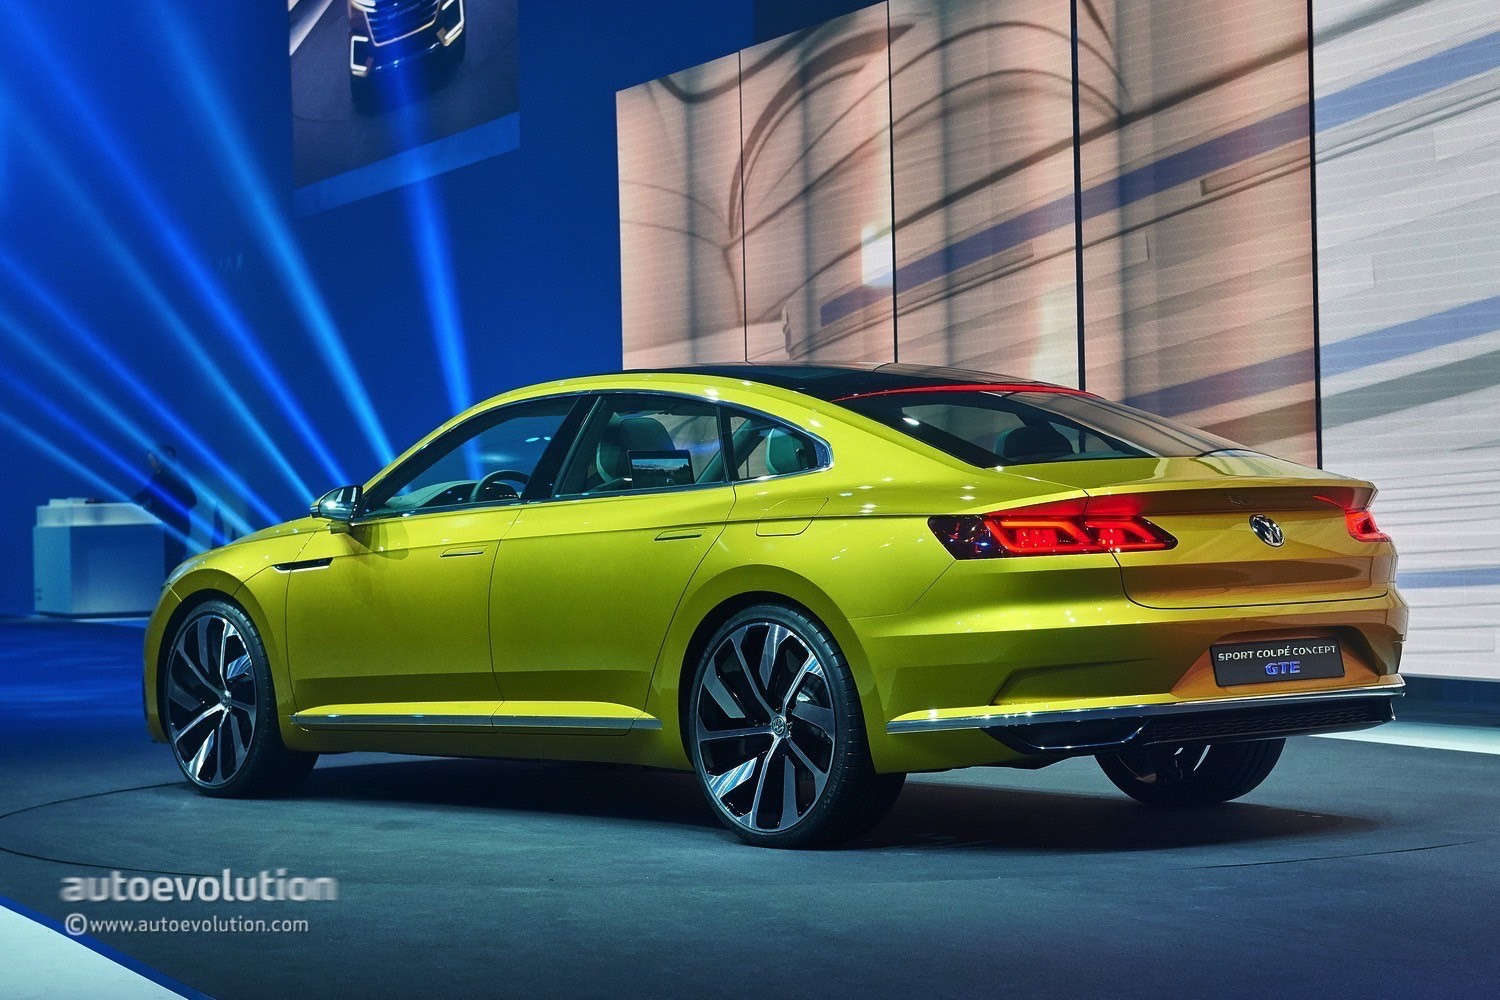 coupe concept gte revealed with v6 turbo hybrid awd live photos